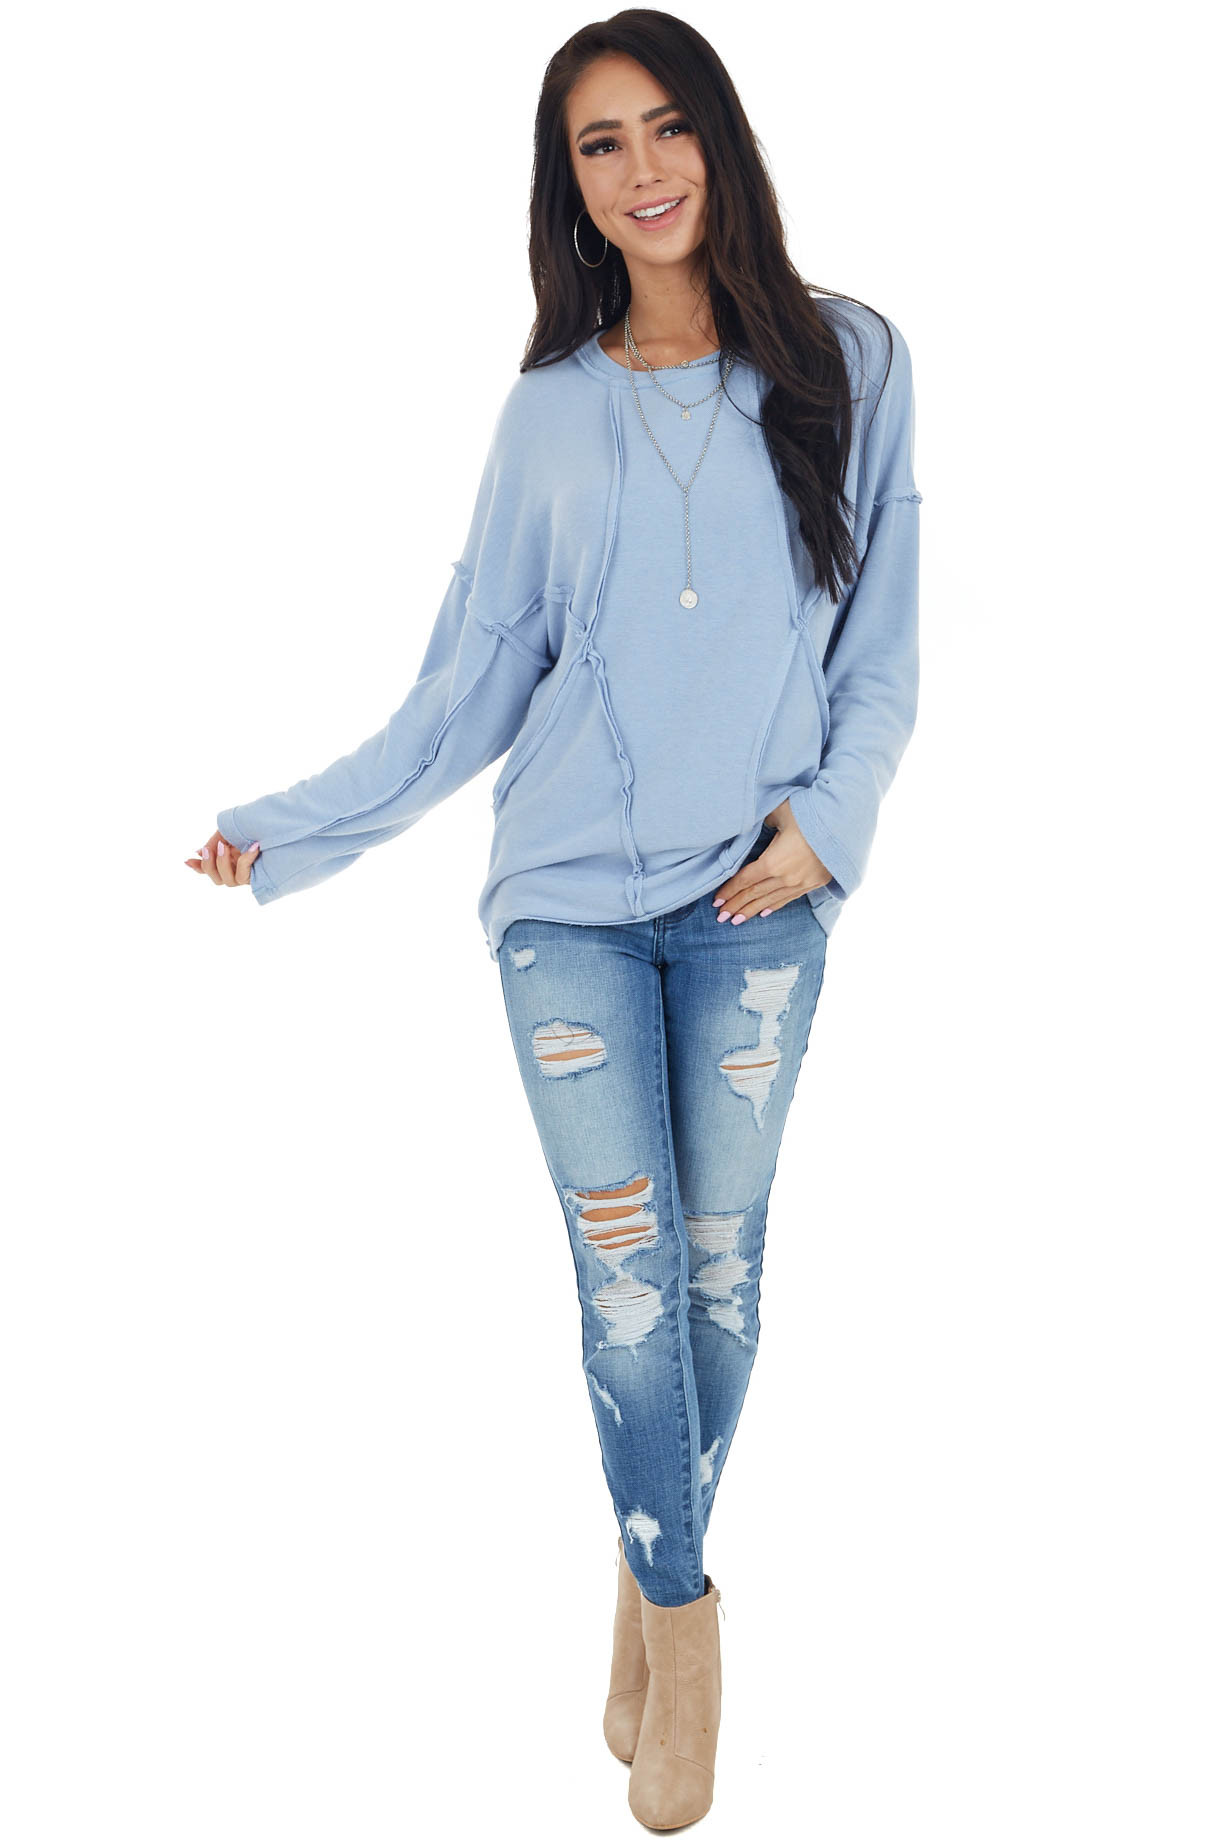 Powder Blue French Terry Knit Top with Raw Edge Details